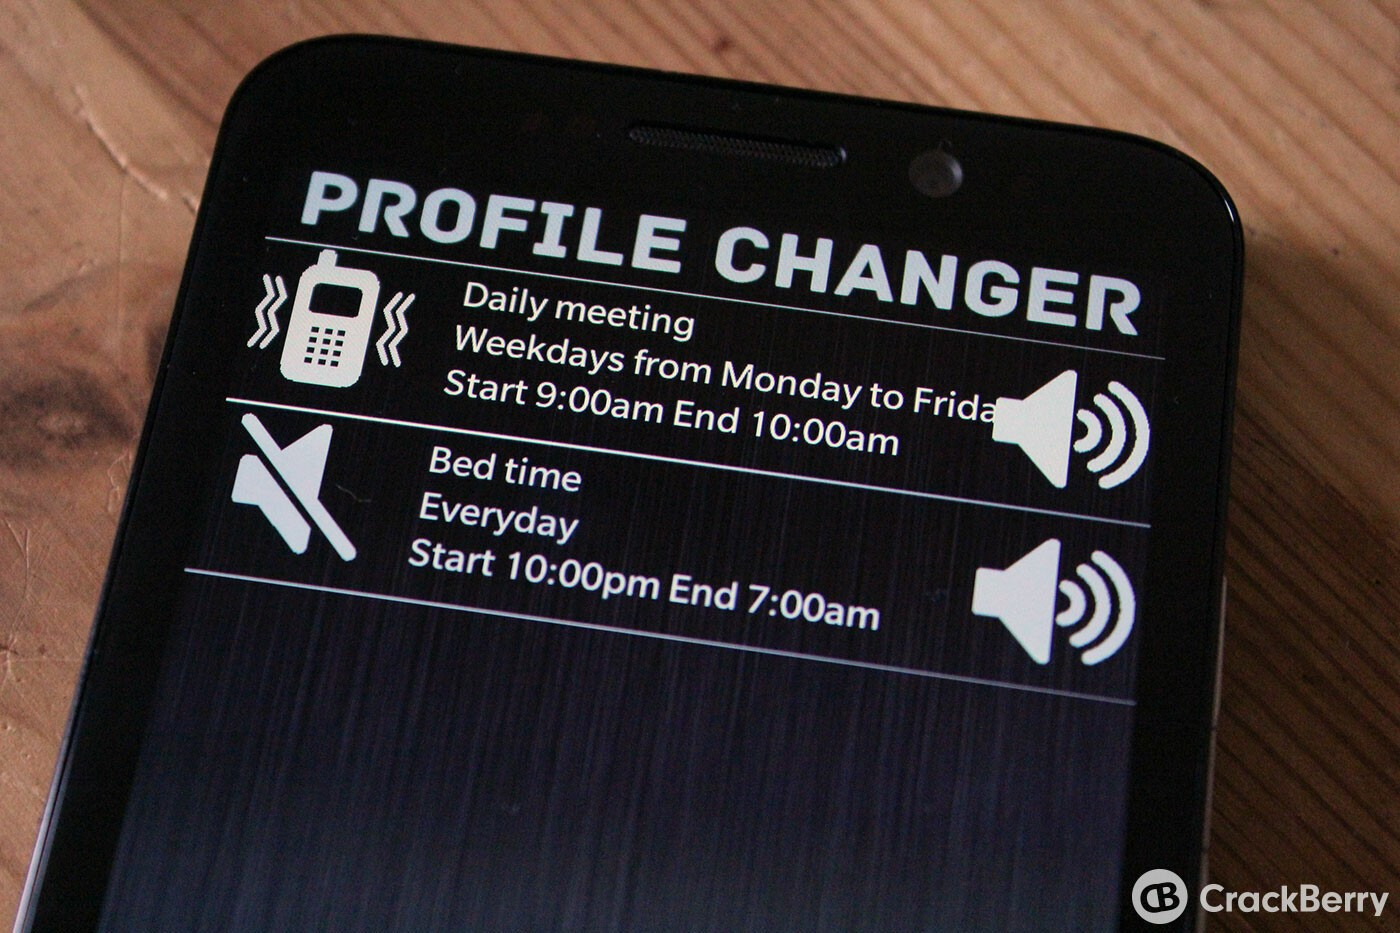 Profile Changer Pro for BlackBerry 10 goes headless